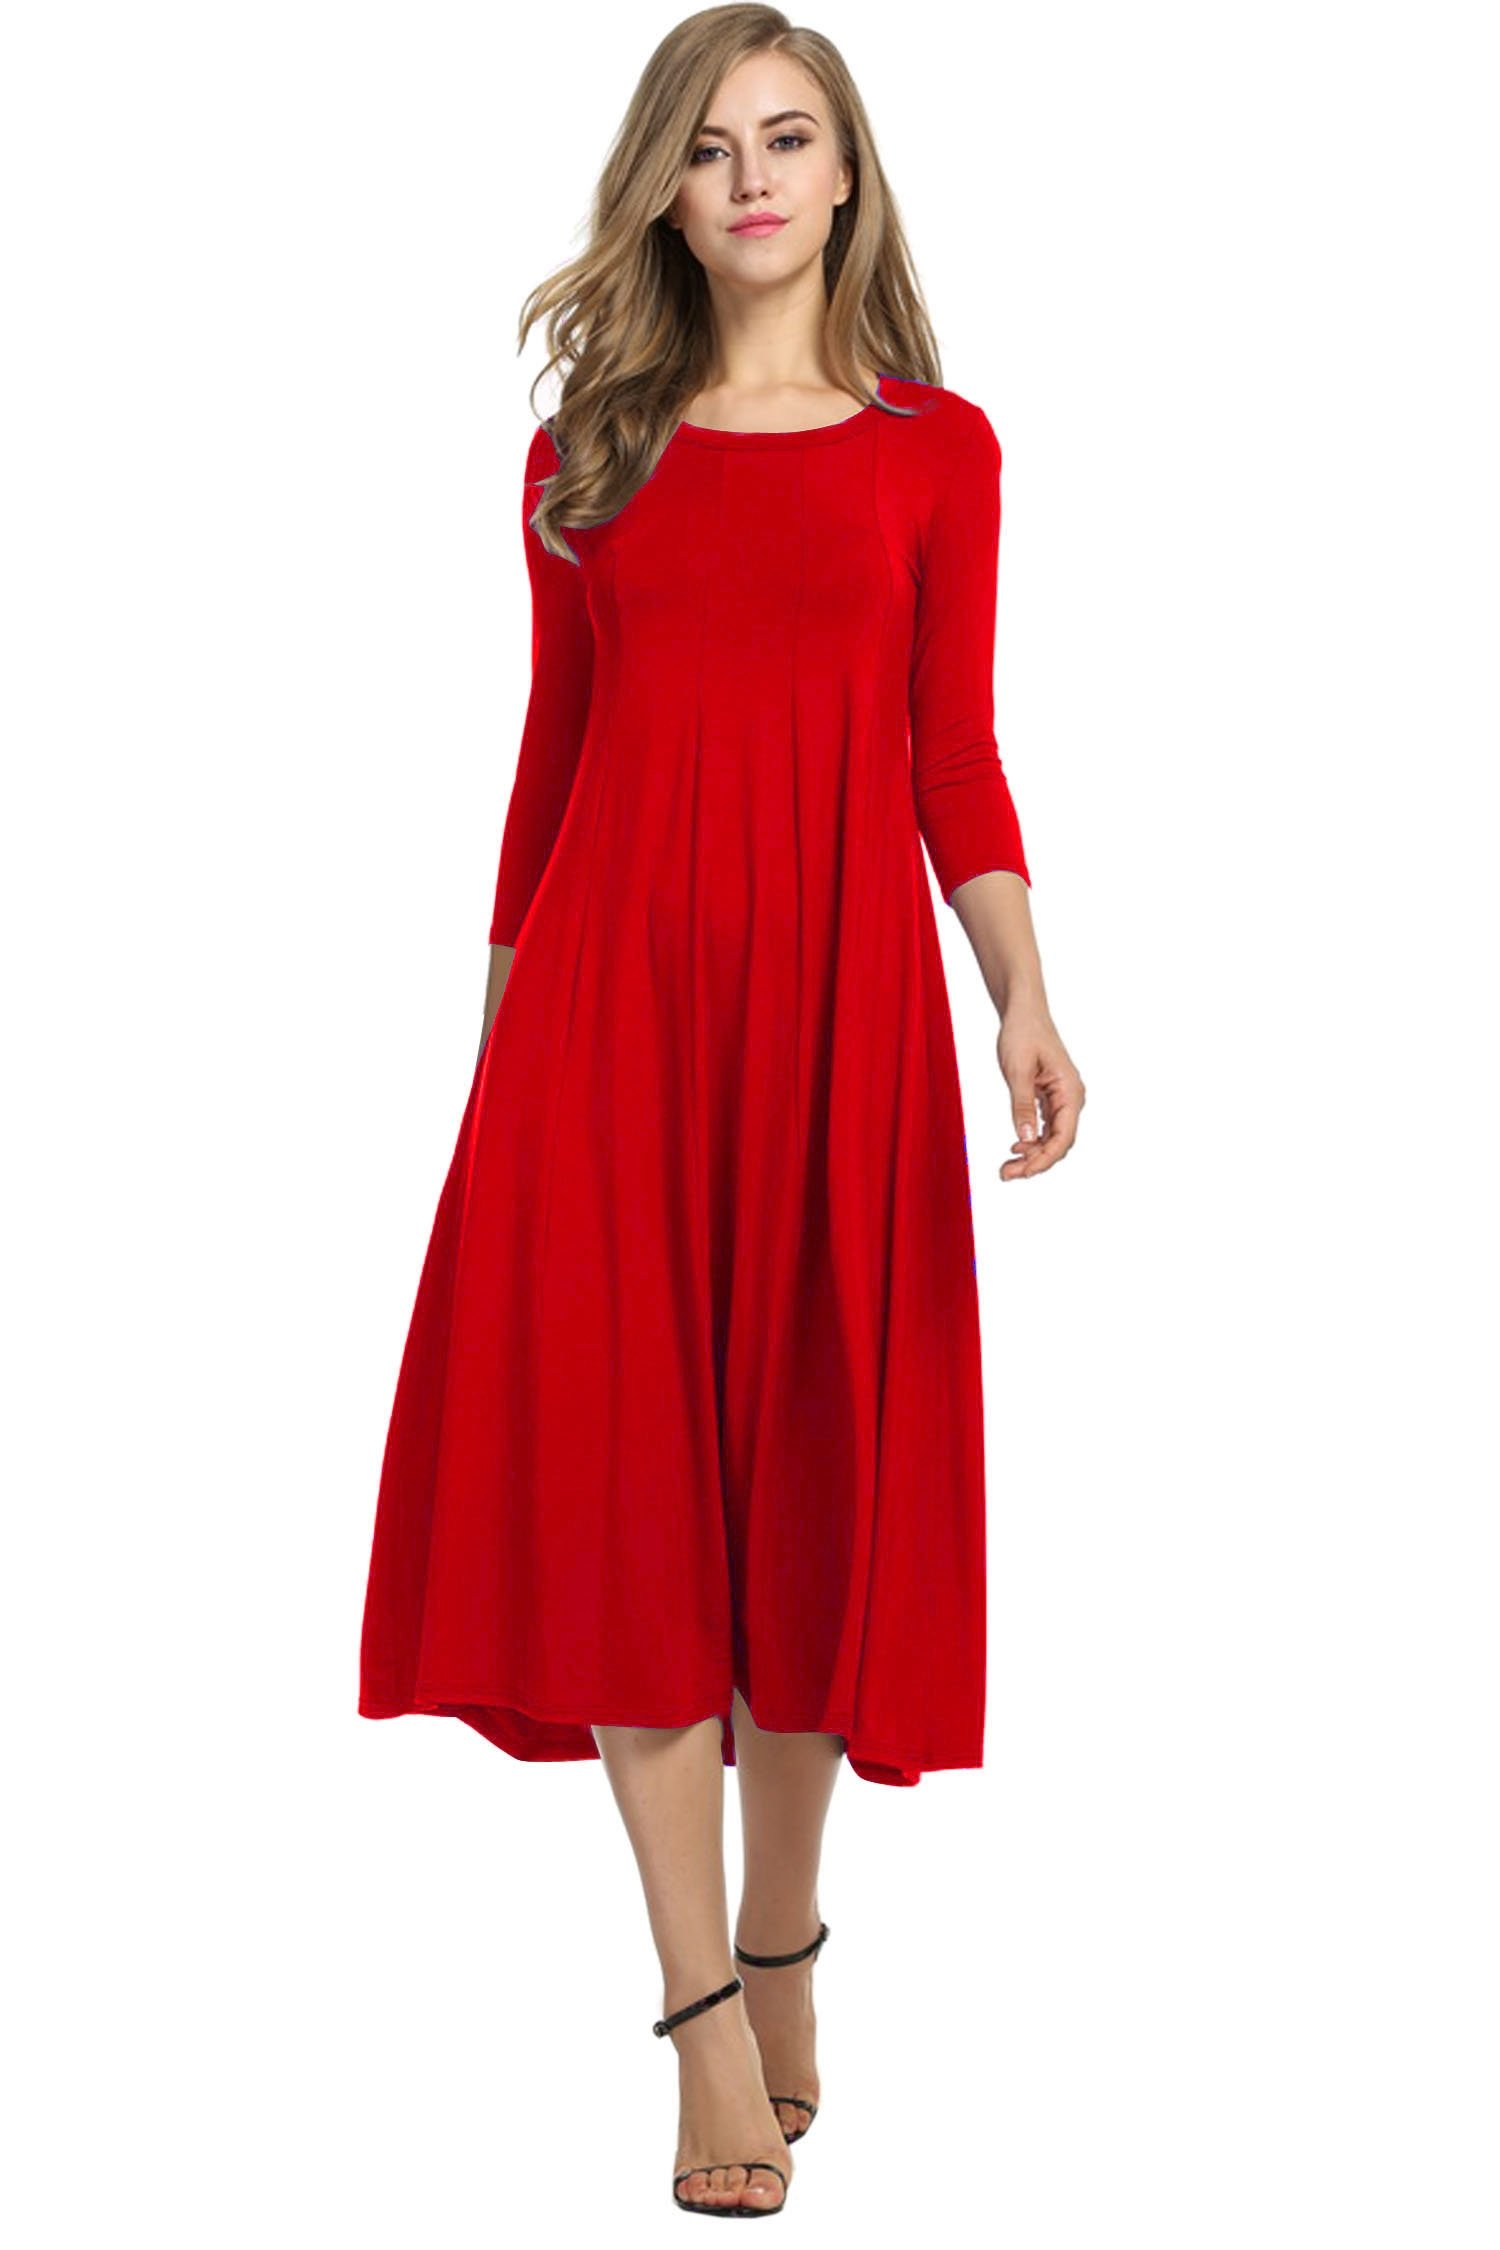 HOTOUCH Women's O Neck Long Dresses Loose Casual Midi Dresses (Red XL)